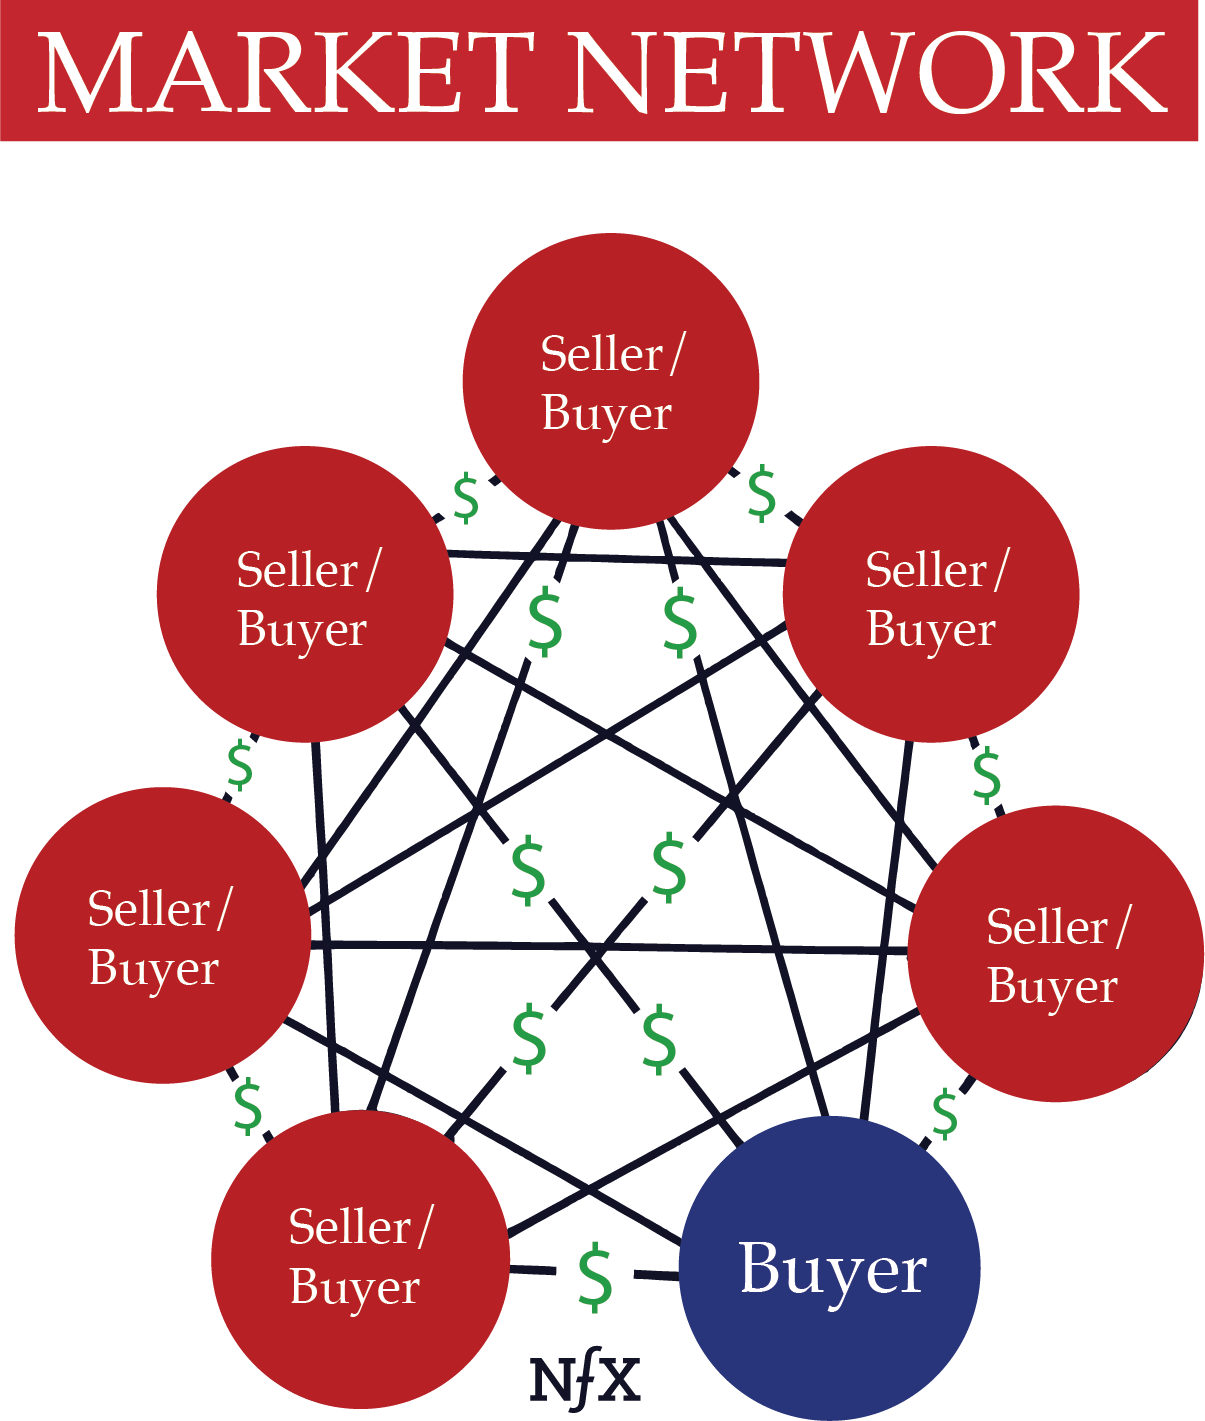 hight resolution of  market networks are very different from 2 sided marketplaces although the two are often confused most people think companies like honeybook and houzz are